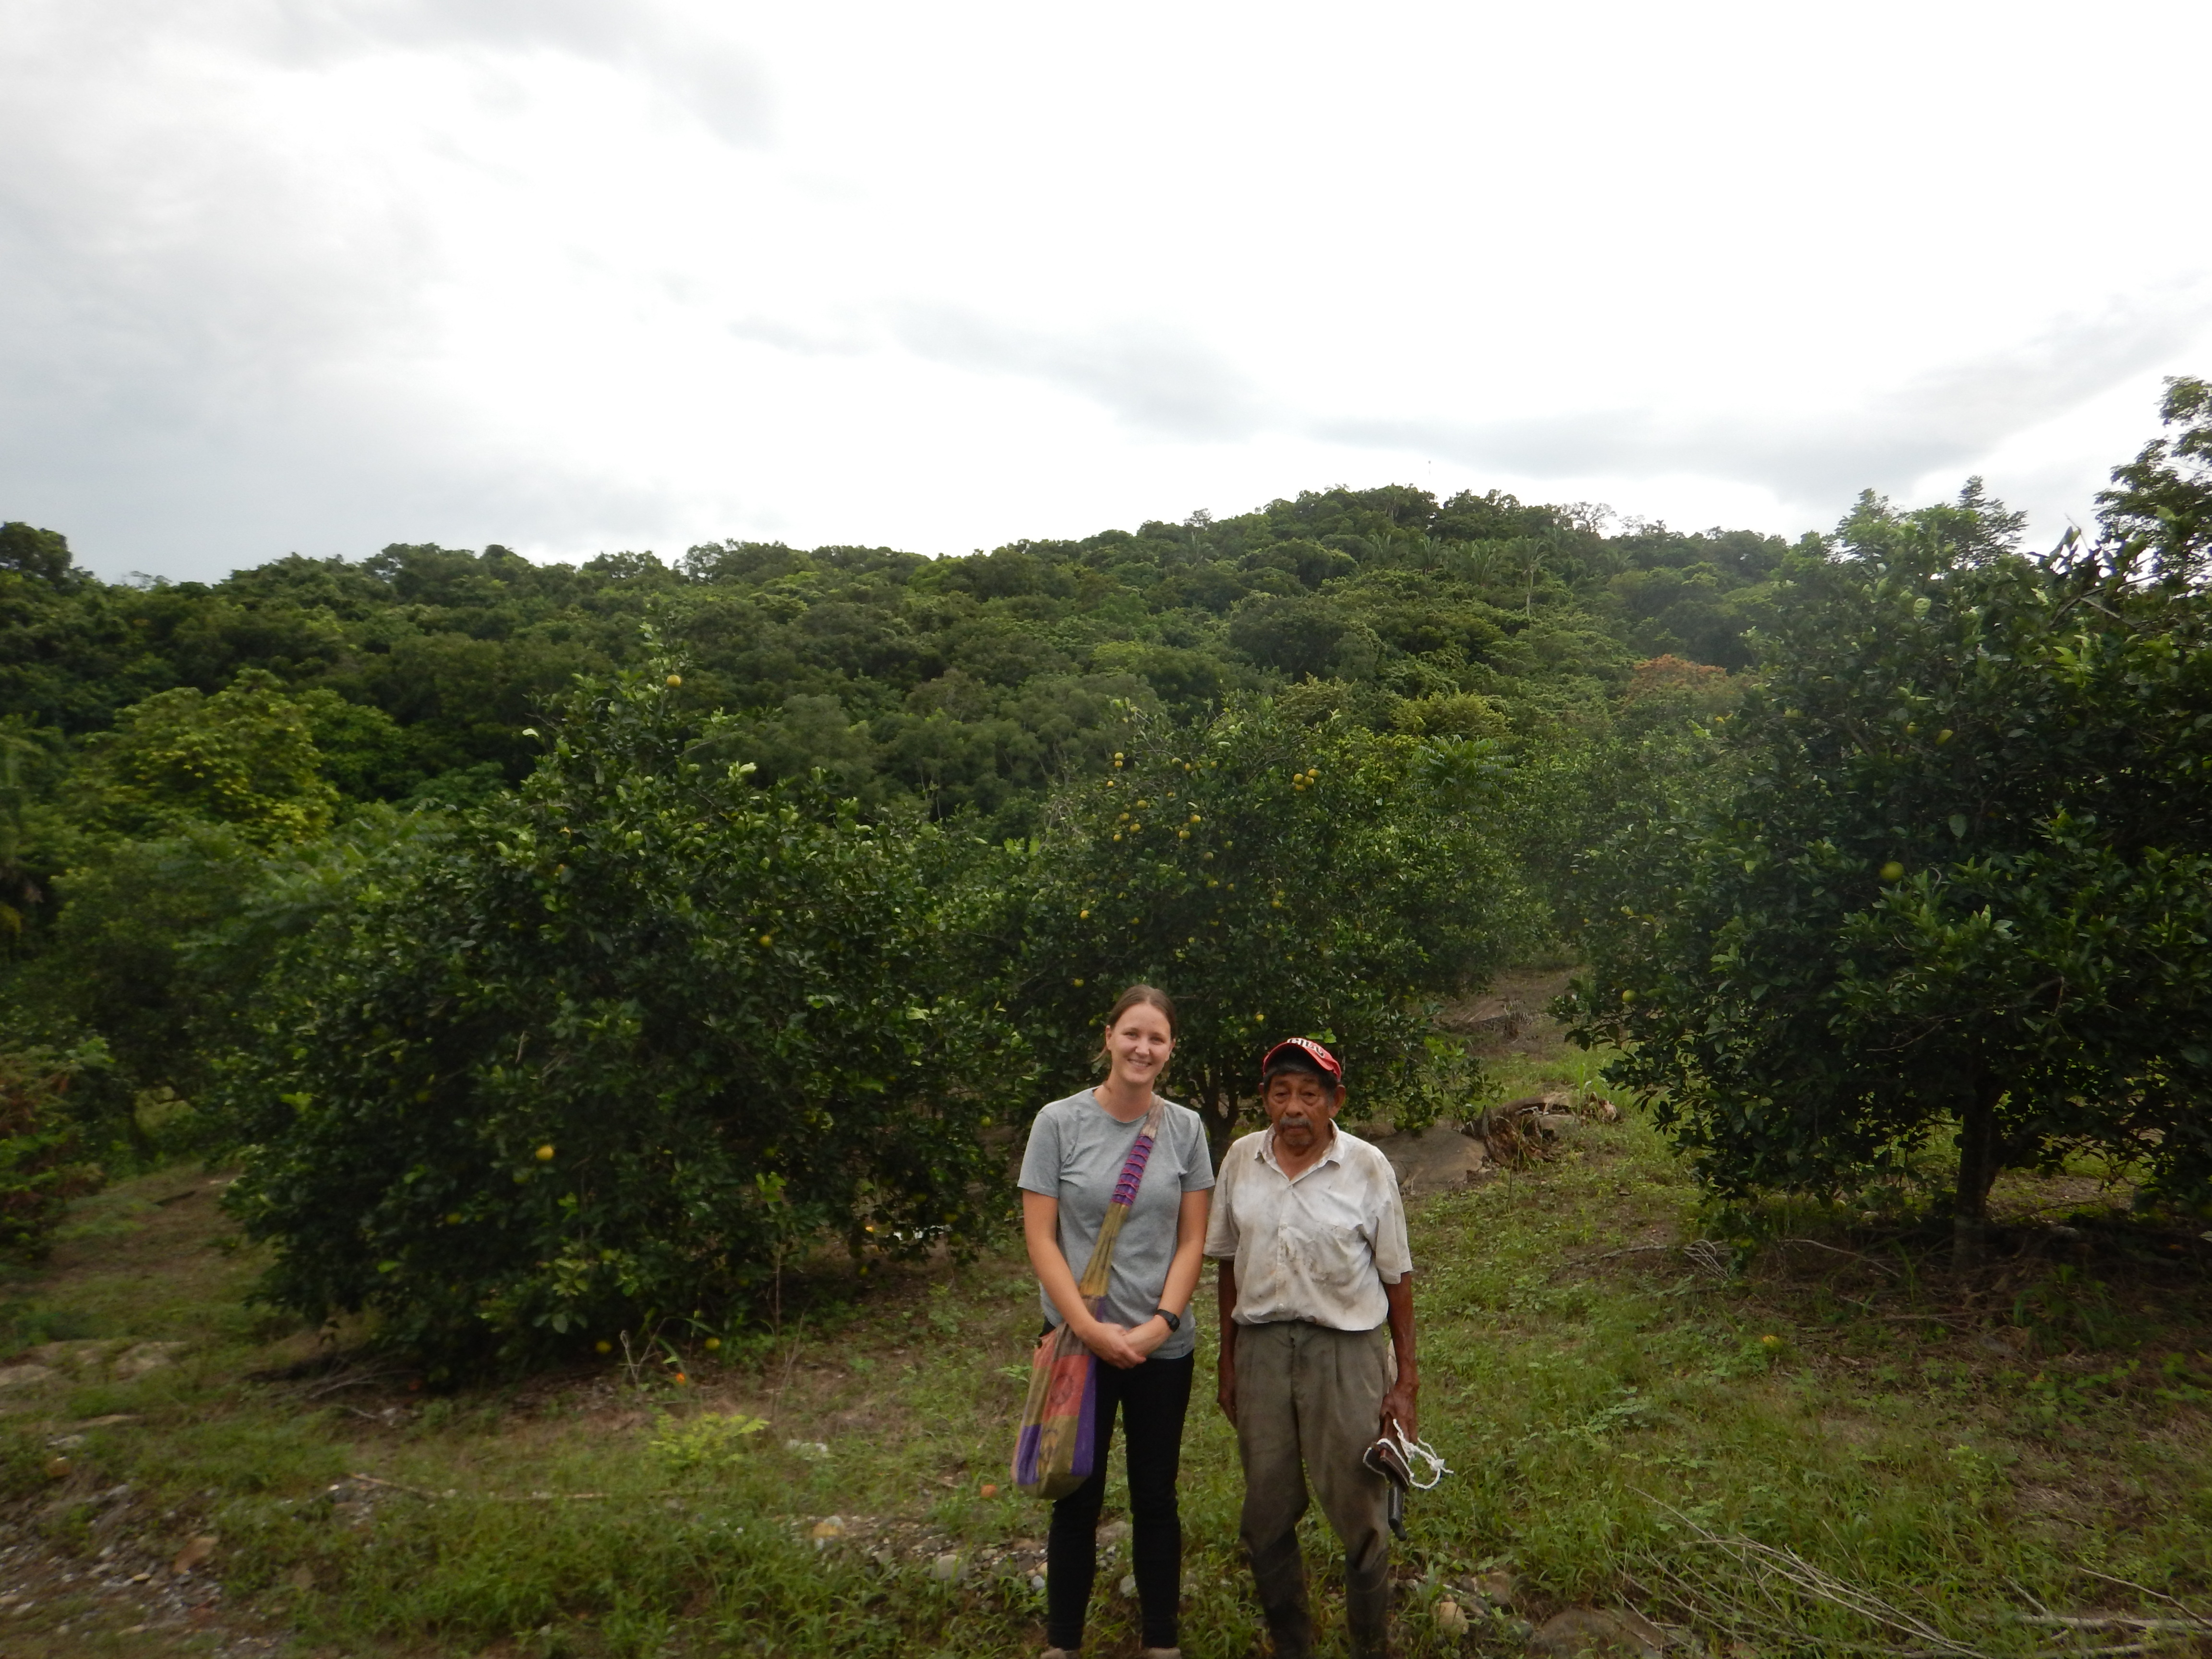 Paige and elderly man in front of vanilla plants